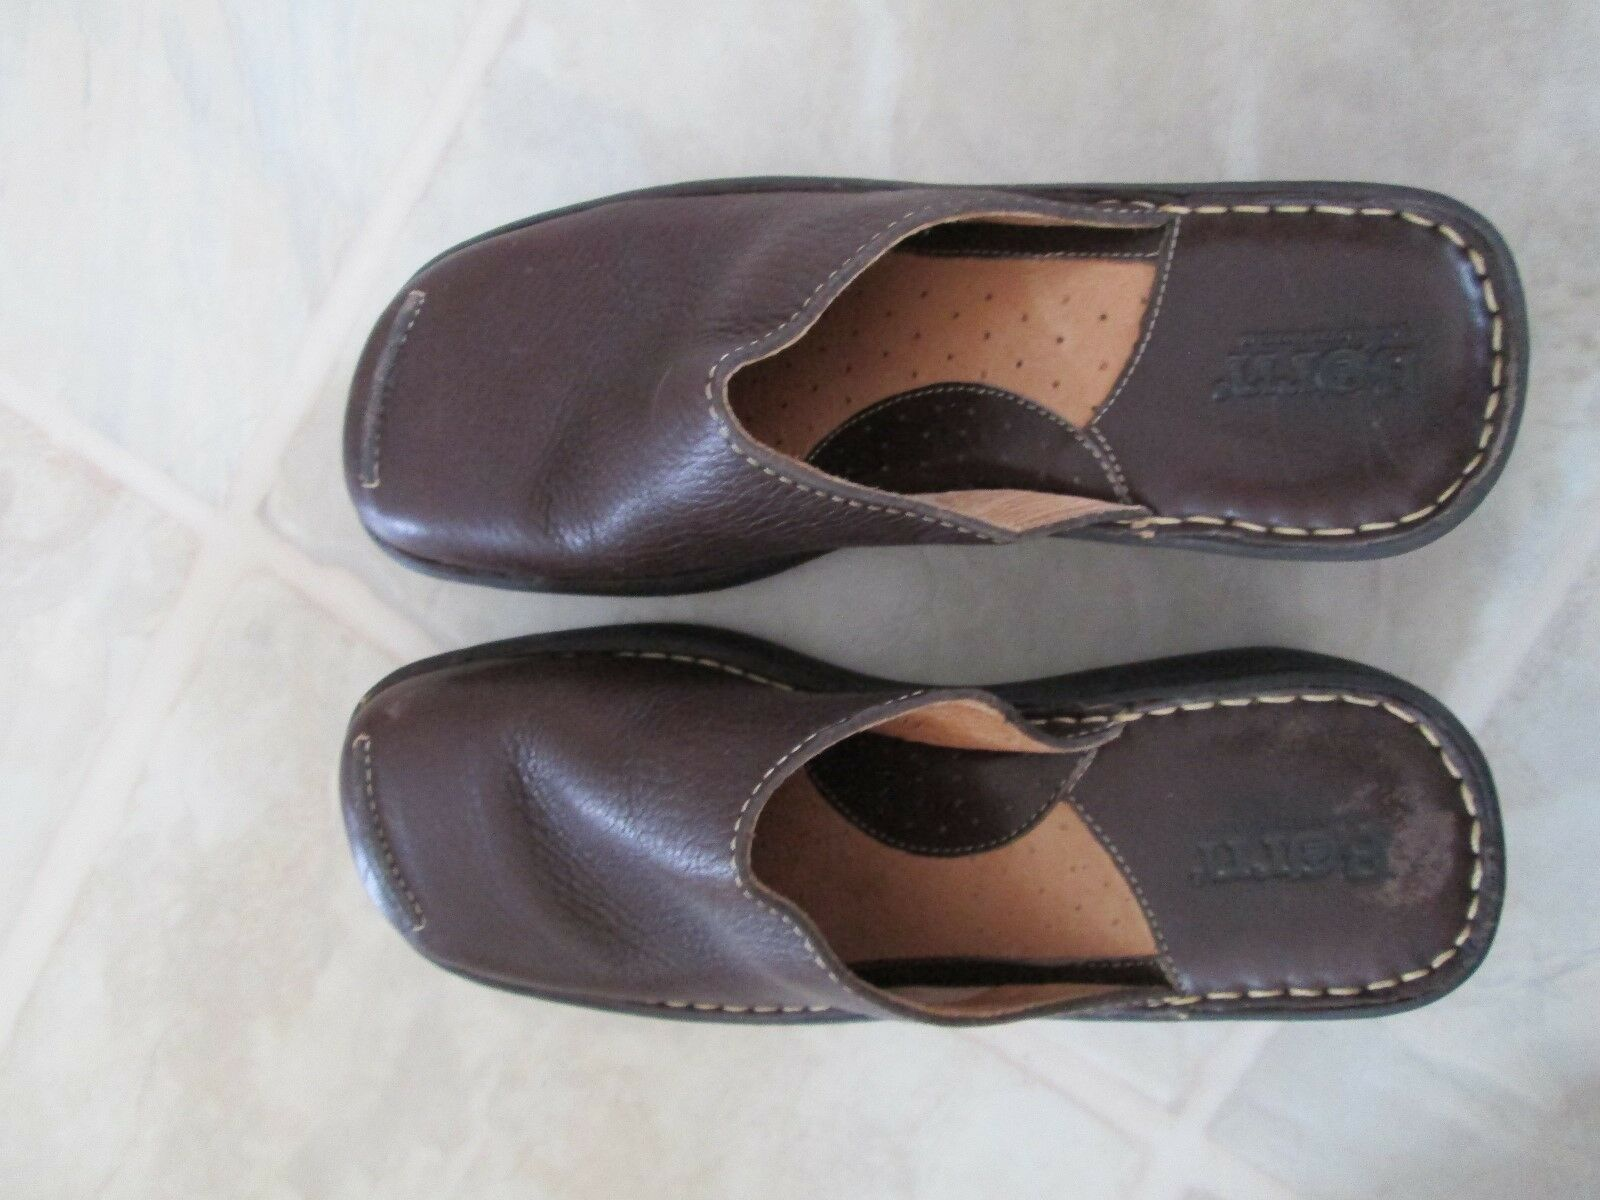 BORN leather clogs 39 size 8 U.S.  39 clogs brown leather comfortable stylish 3aae8a